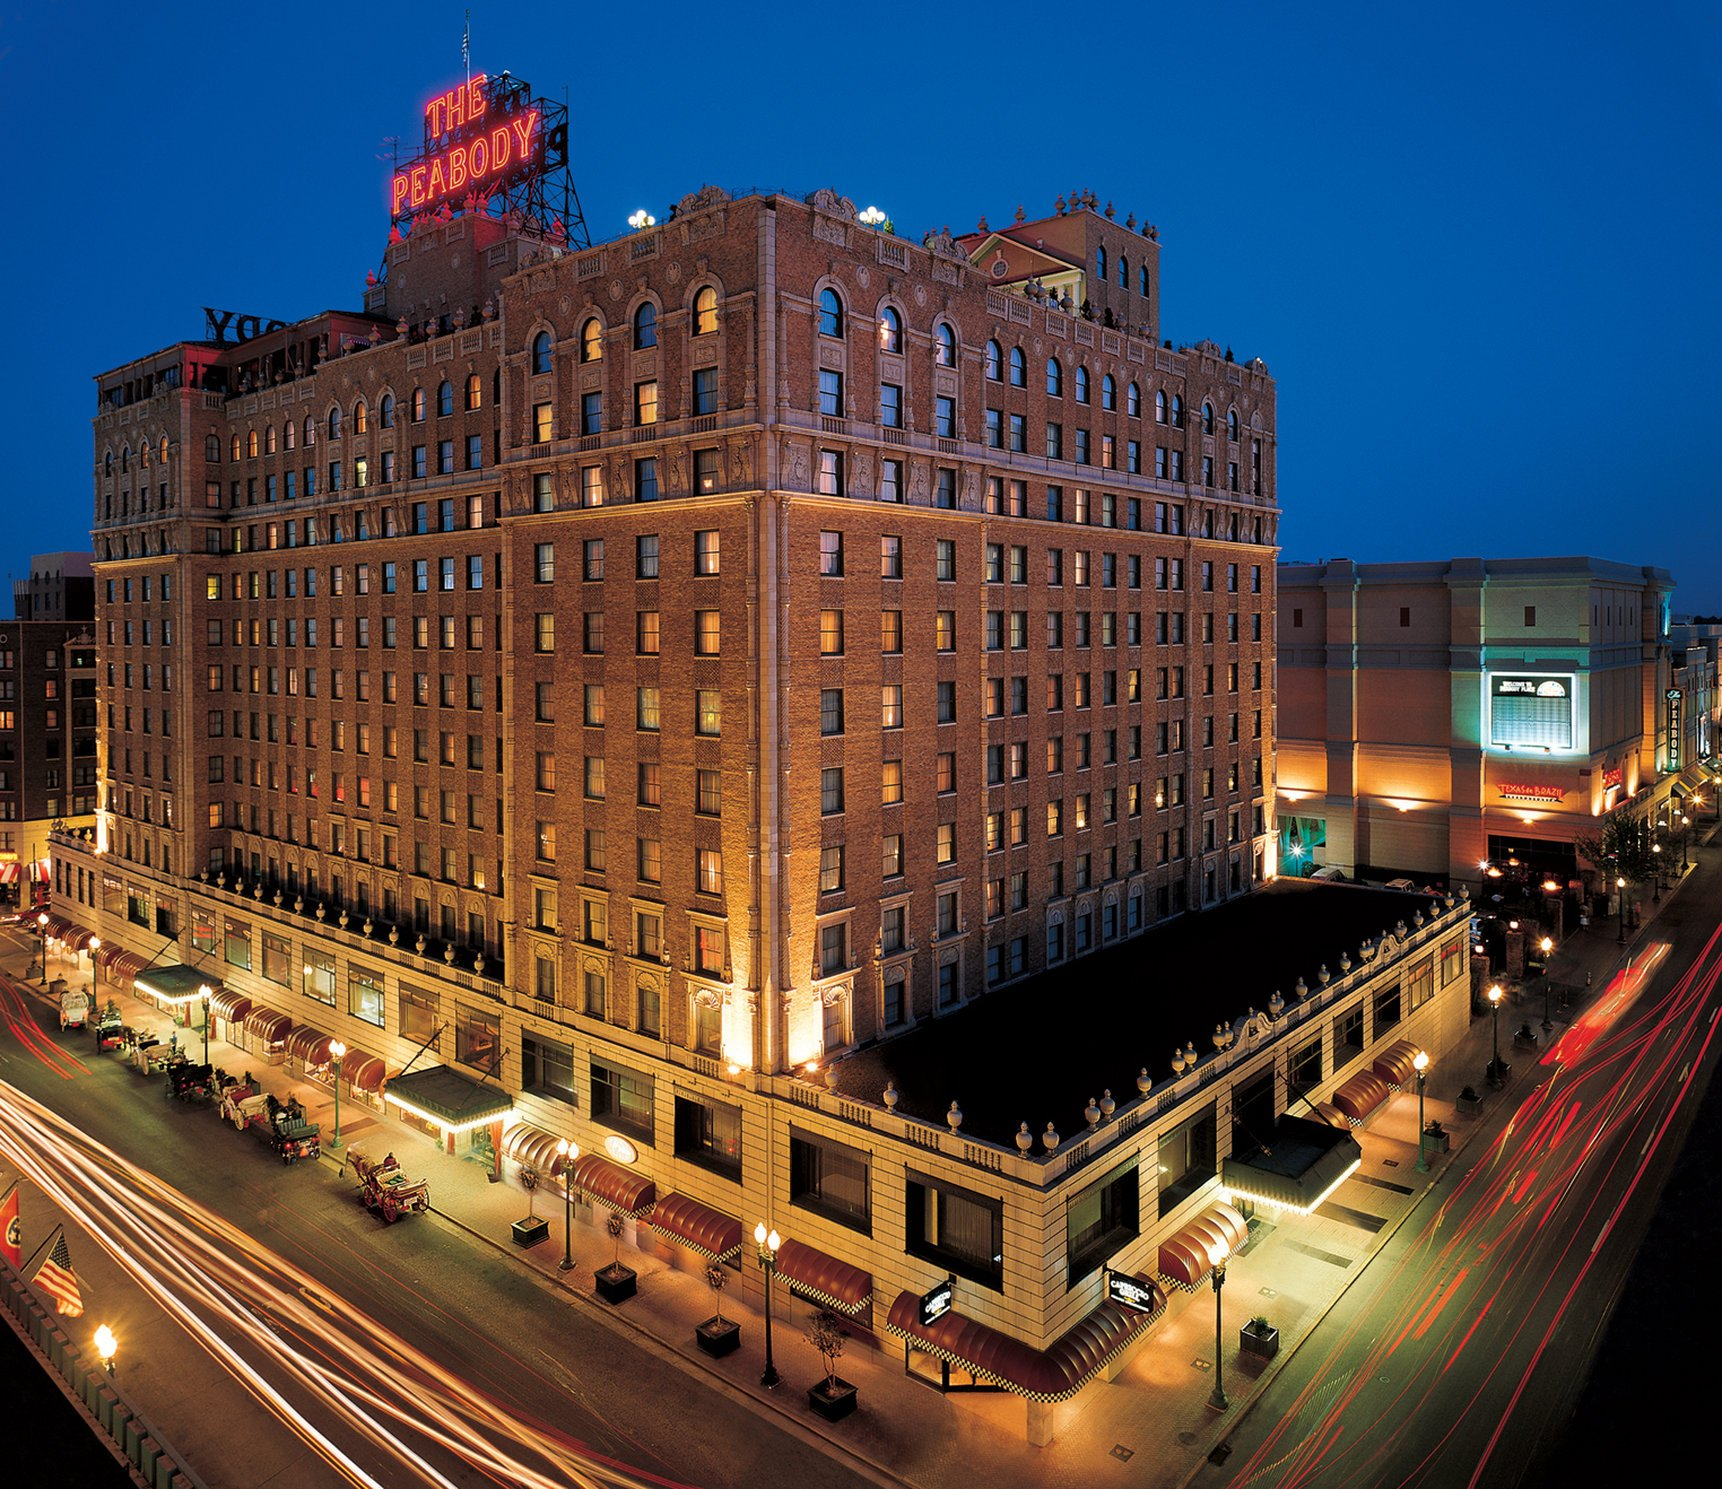 1000  ideas about Peabody Hotel Memphis on Pinterest | Hotels in ...